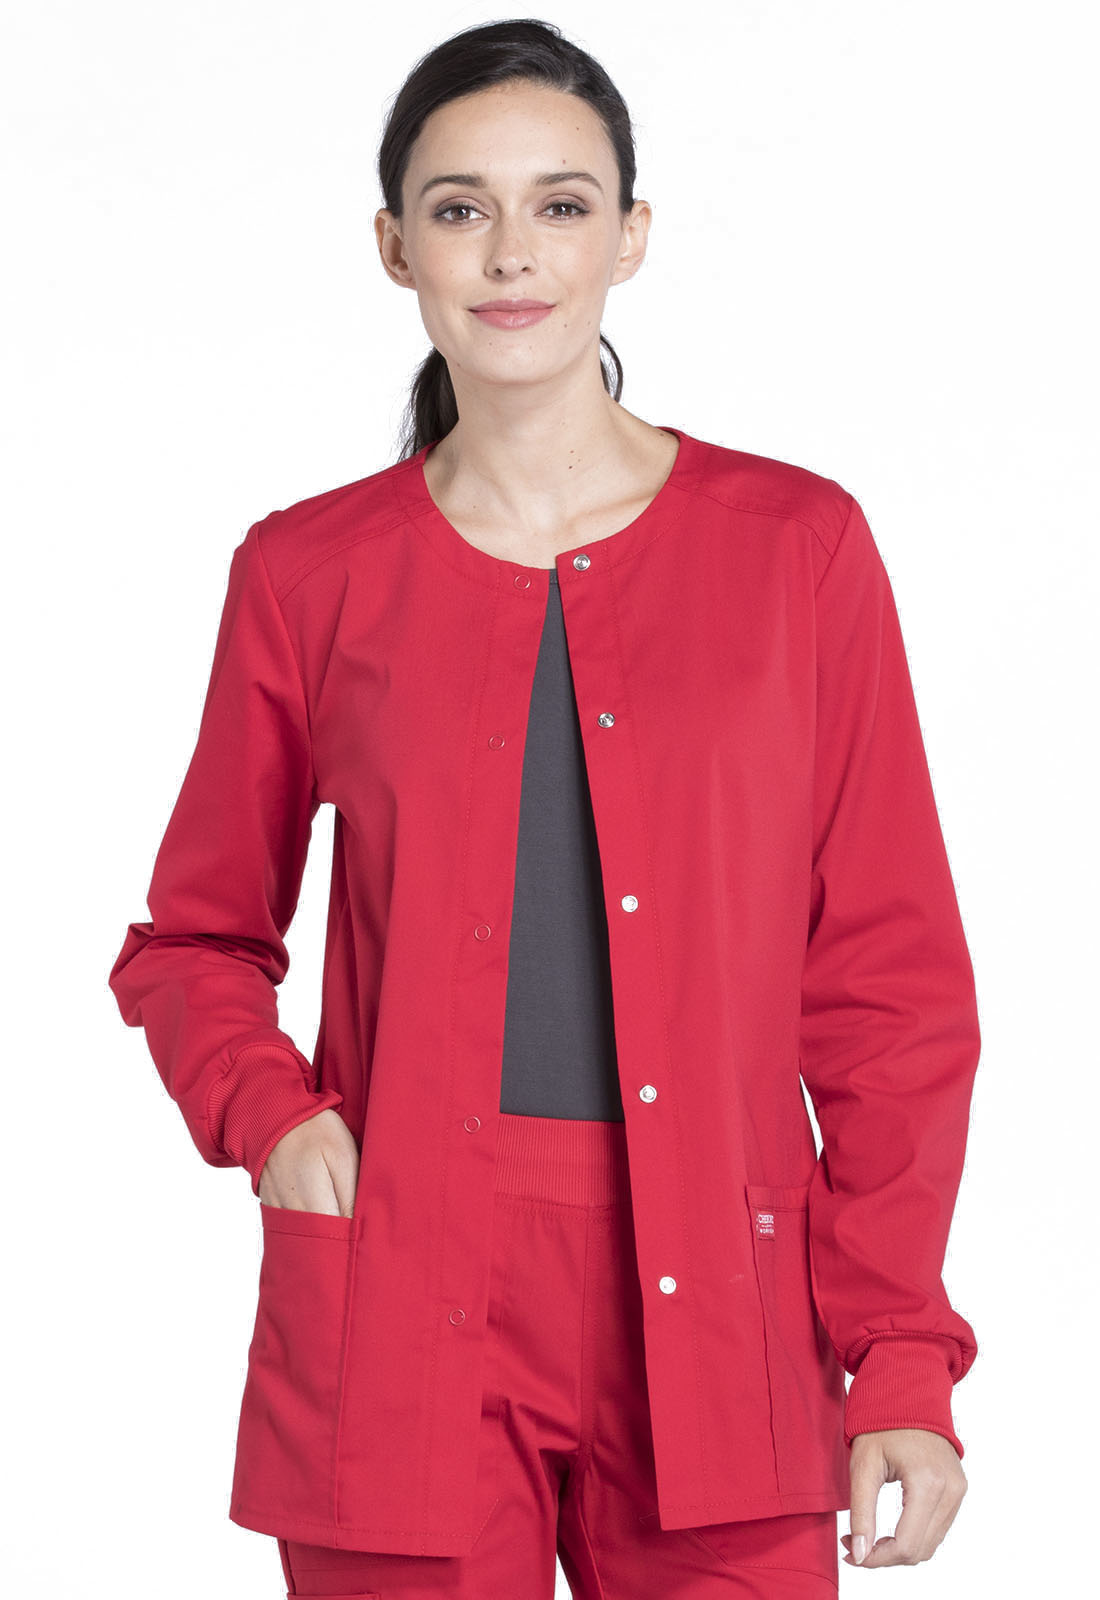 d18d6f7938c WW Professionals Snap Front Warm-up Jacket in Red WW340-RED from DASCO Reid  Uniform & Shoes